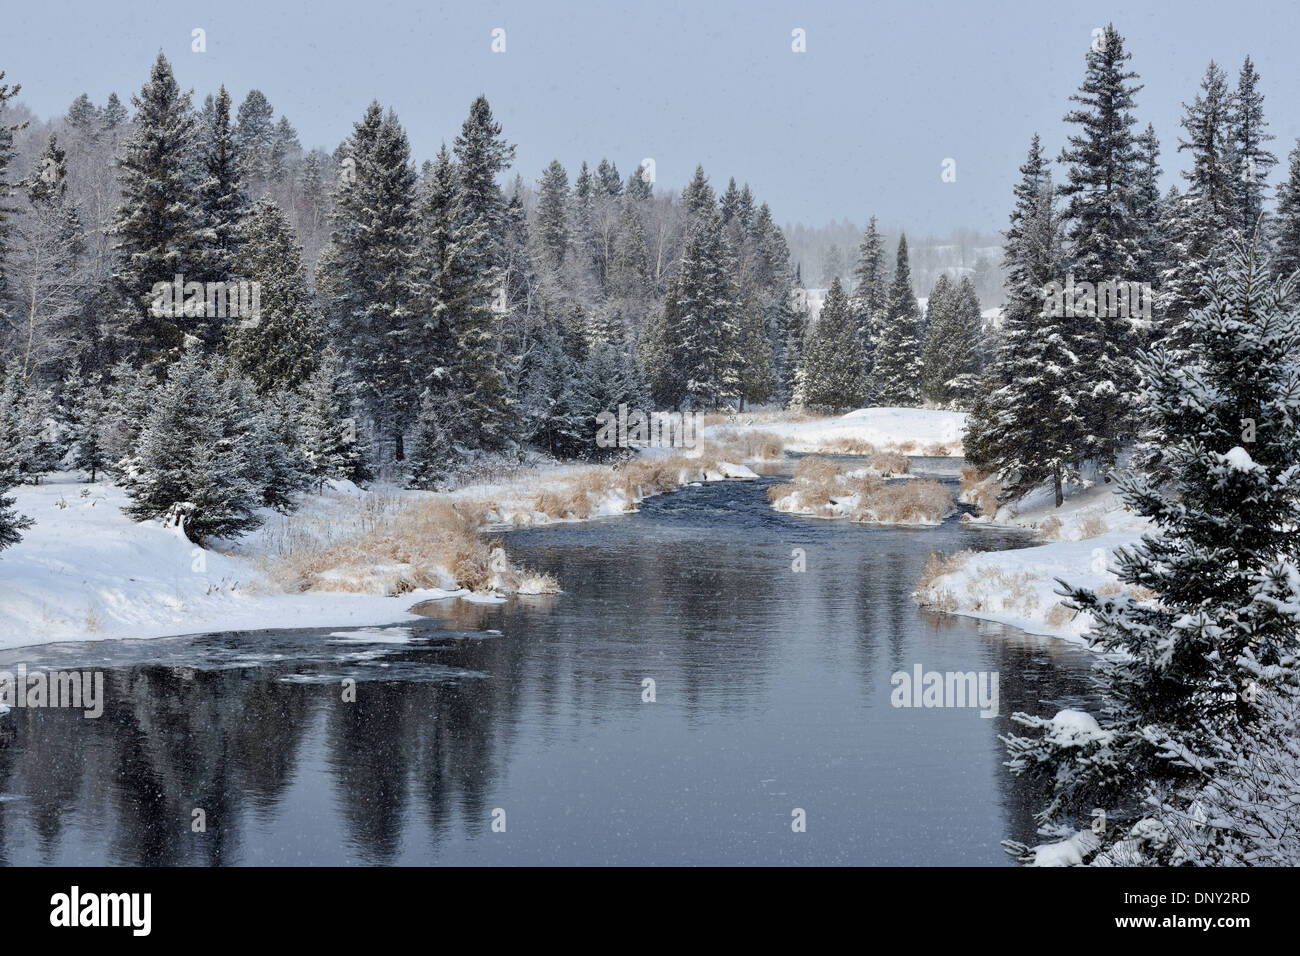 Open water of Junction Creek with an early winter snowfall, Greater Sudbury, Ontario, Canada Stock Photo